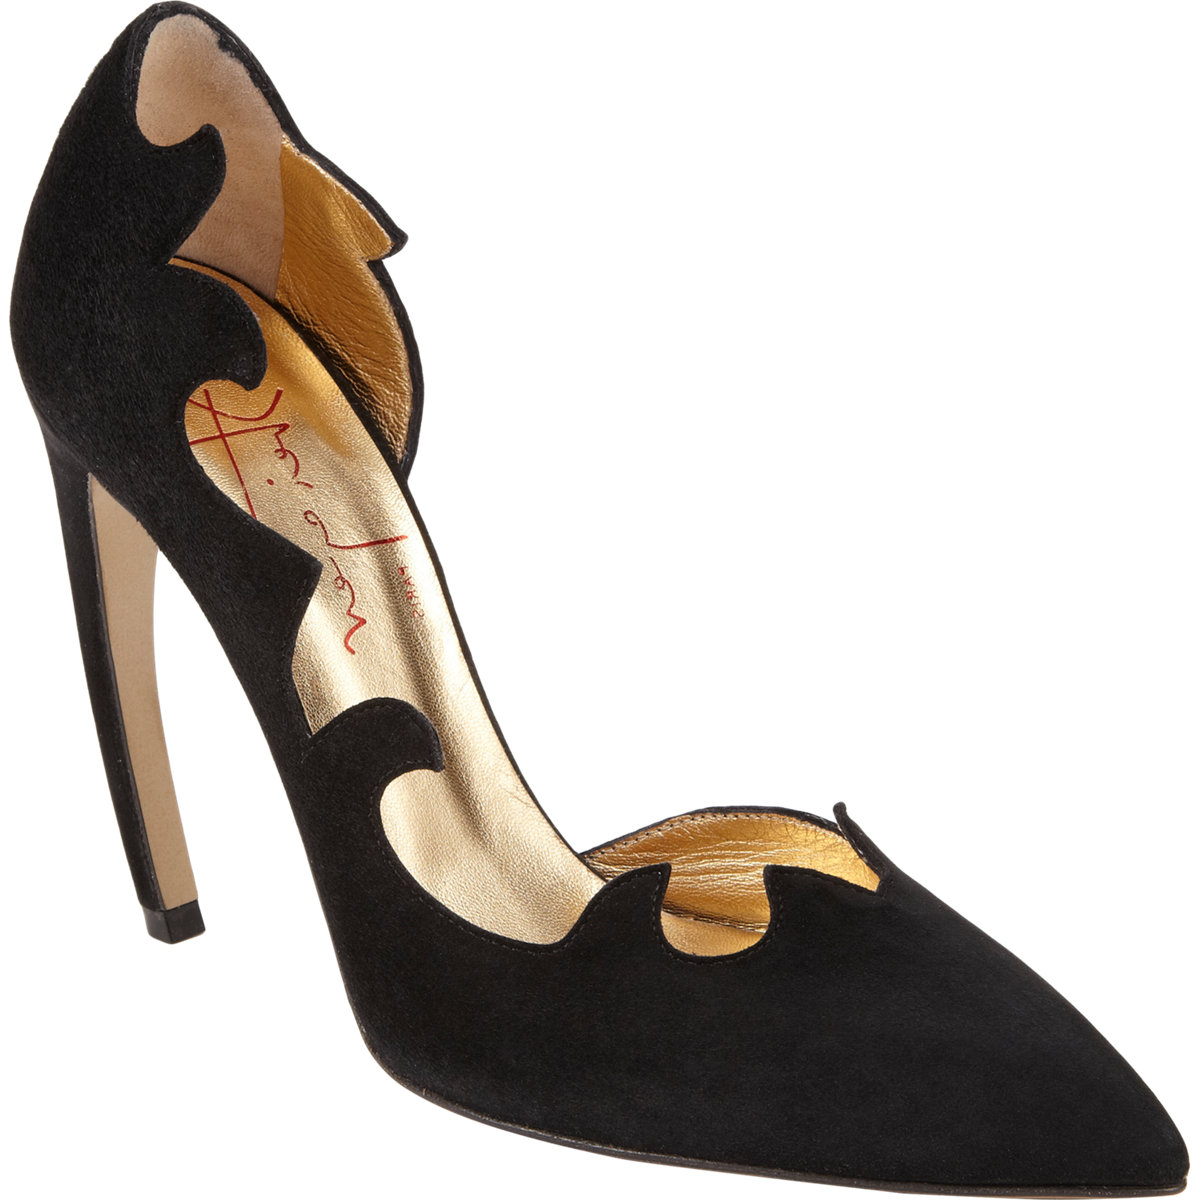 WALTER STEIGER Edged D'Orsay Pump buy HERE